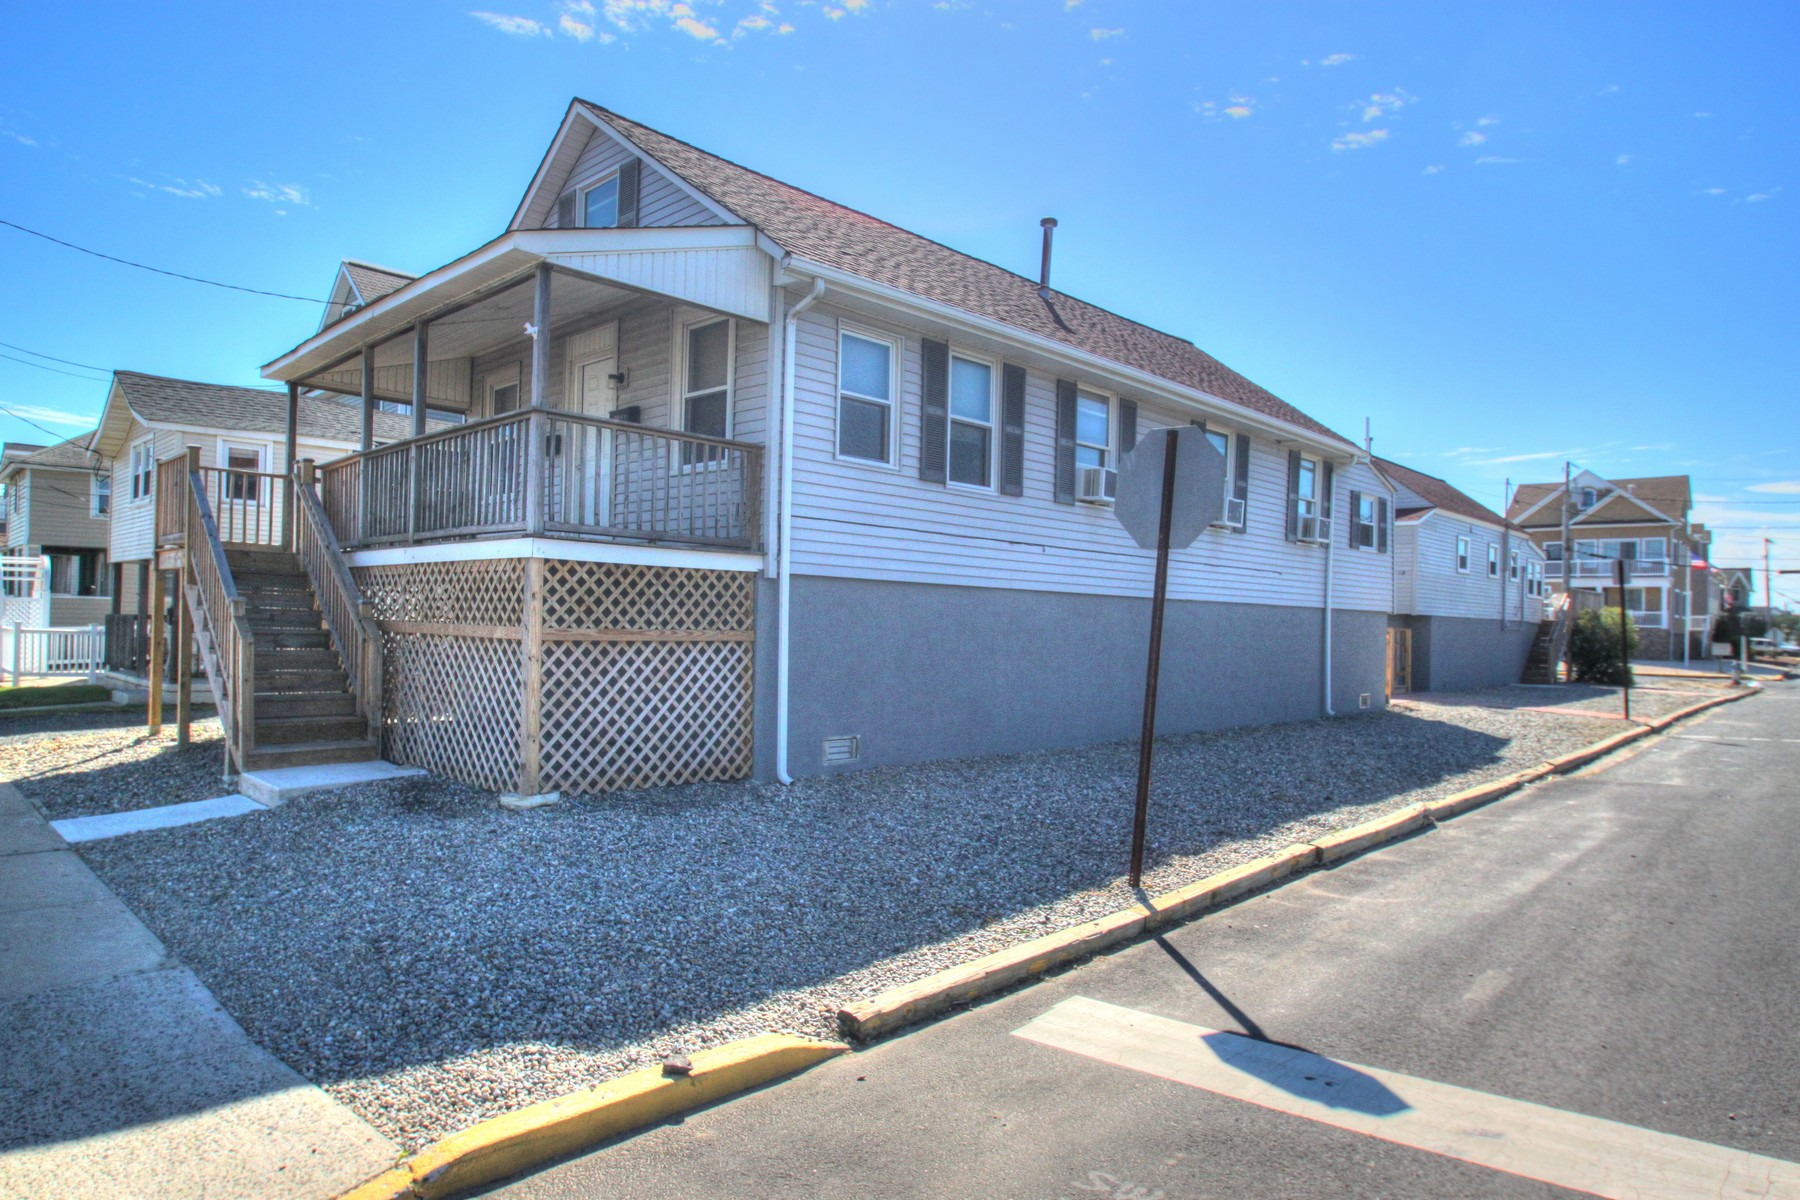 Multi-Family Home for Sale at Great Investment ~ Two Units 549-549 1/2 Brielle Rd Manasquan, New Jersey 08736 United States